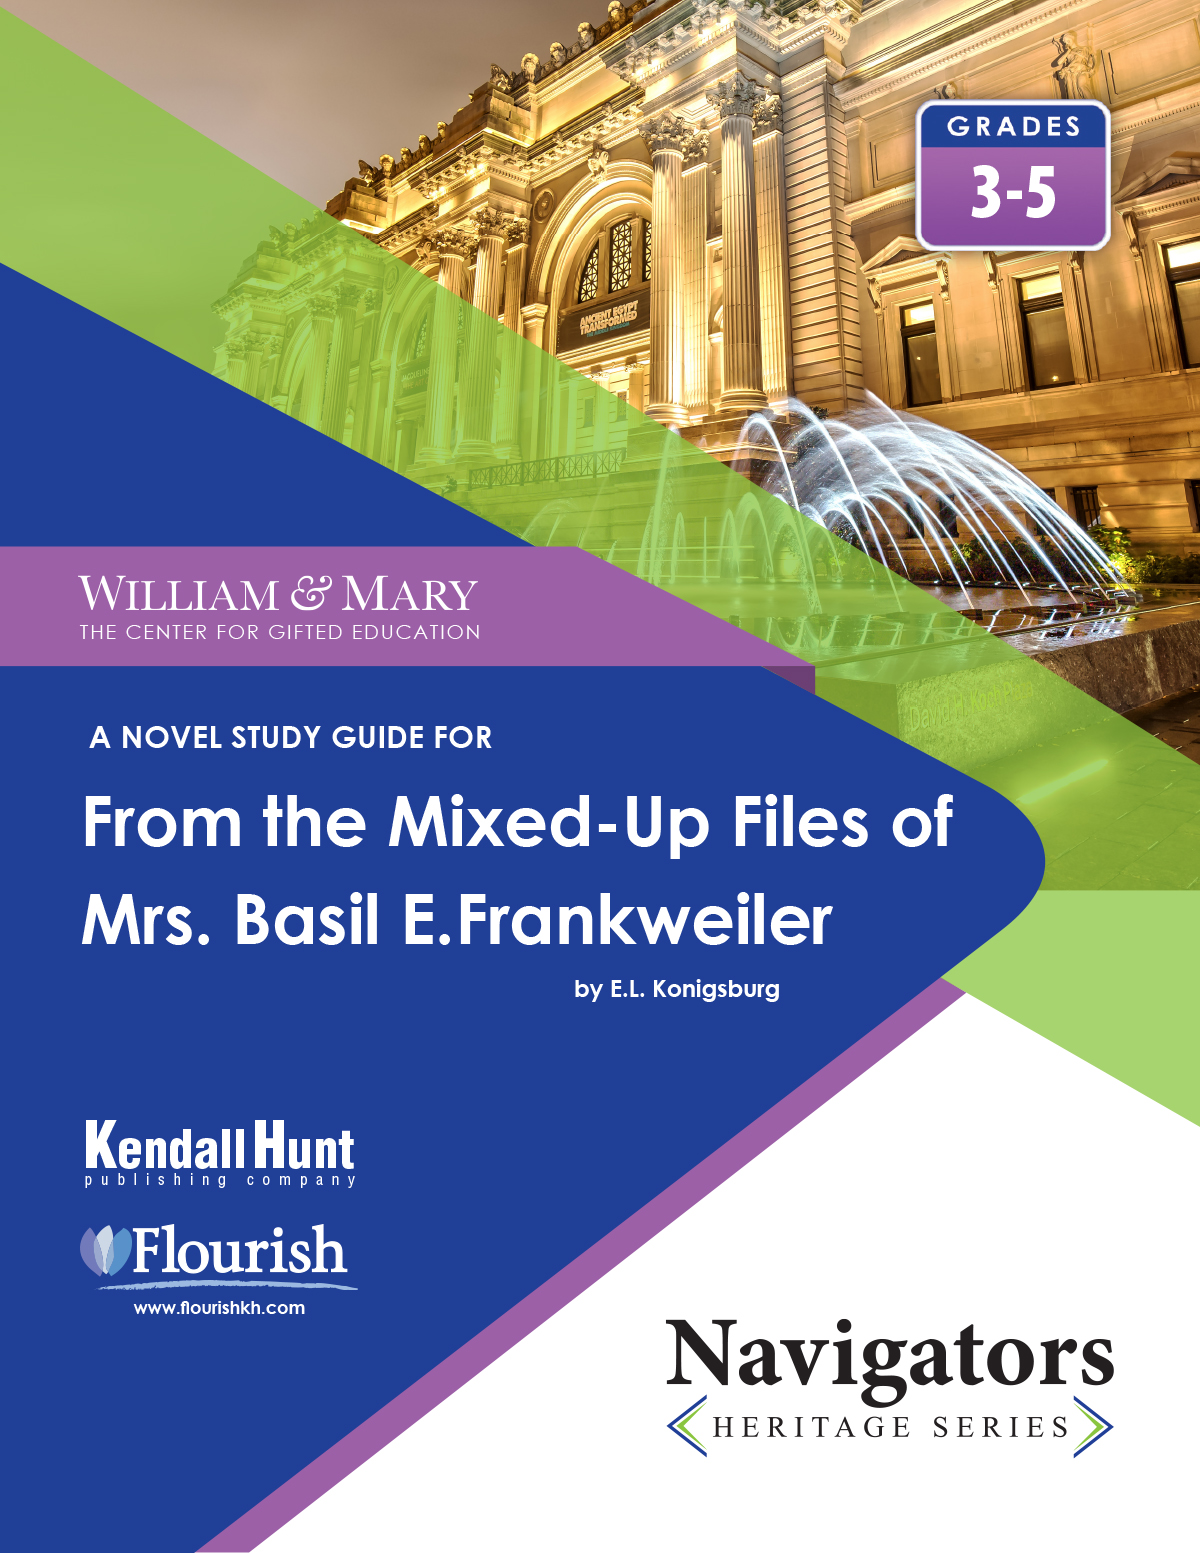 William & Mary Navigator From the Mixed-Up Files of Mrs. Basil E. Frankweiler